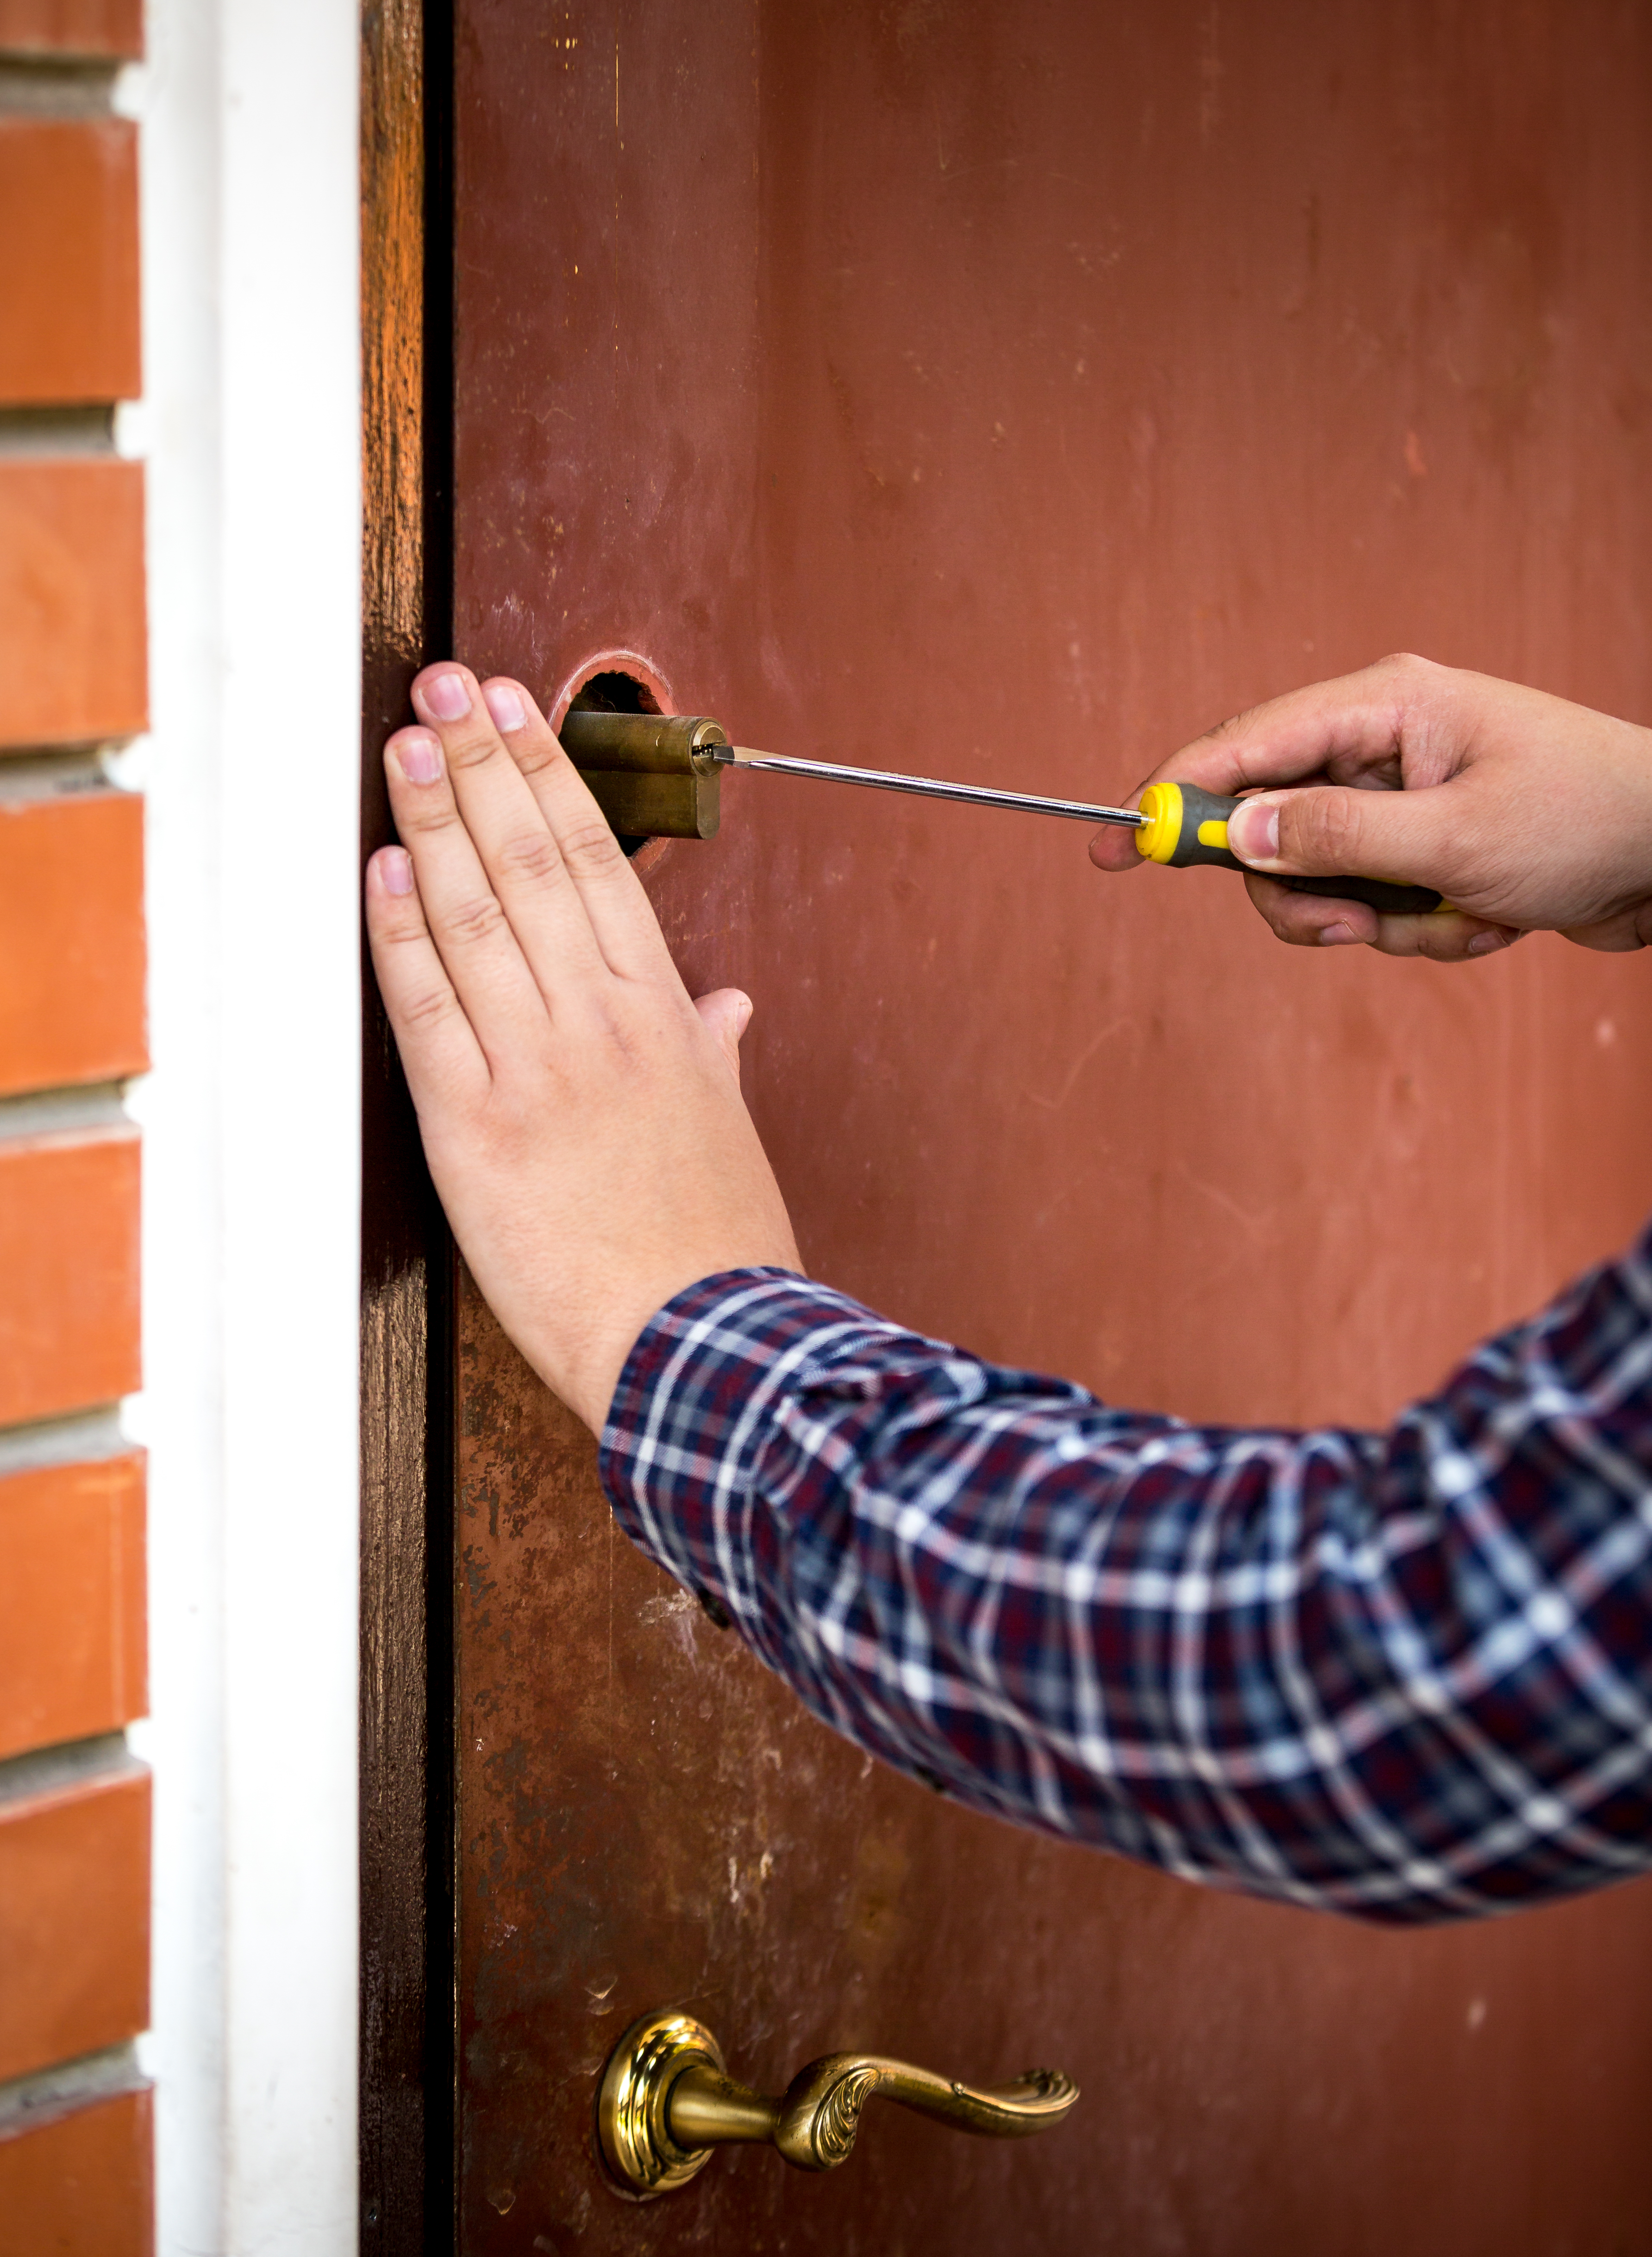 How To Unlock A Door Without A Key >> 5 Ways To Unlock A Door Without A Key Call Us At 775 355 4771